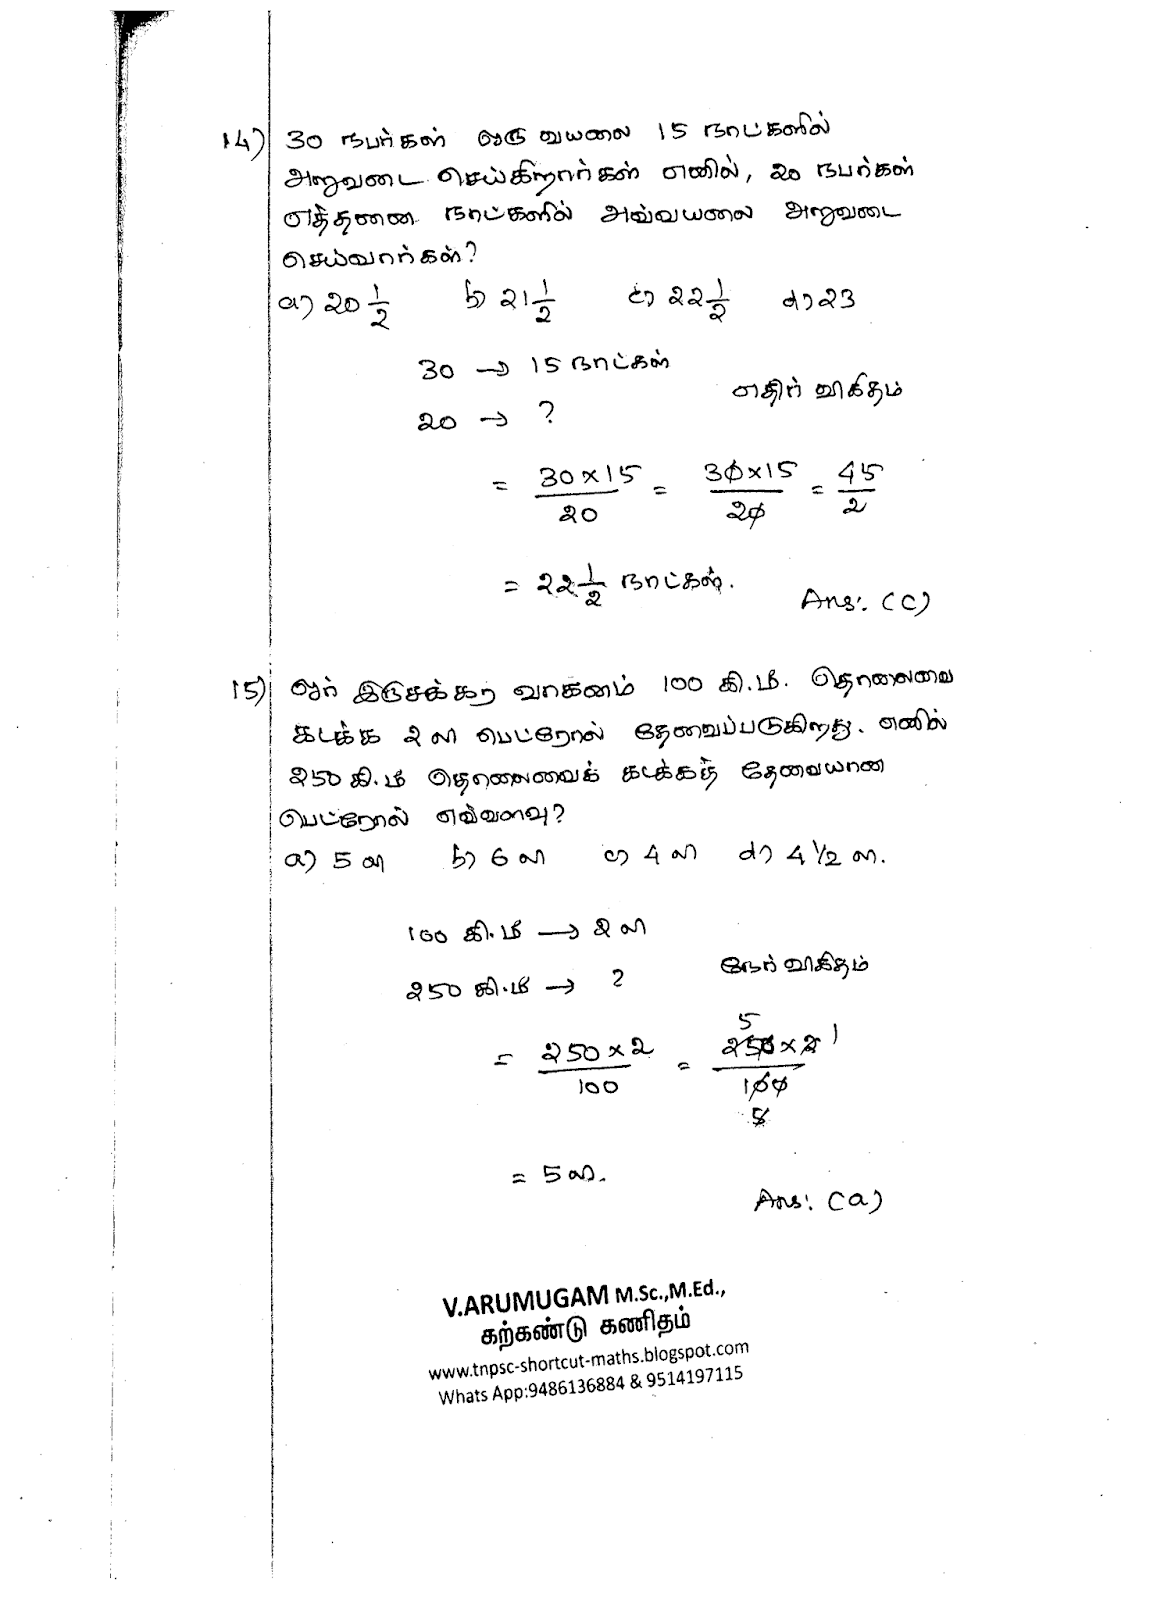 2019 - NEW SYLLABUS - VII STD - I TERM - UNIT-4: DIRECT & INVERSE PROPORTIONS - PAGE - 07/29